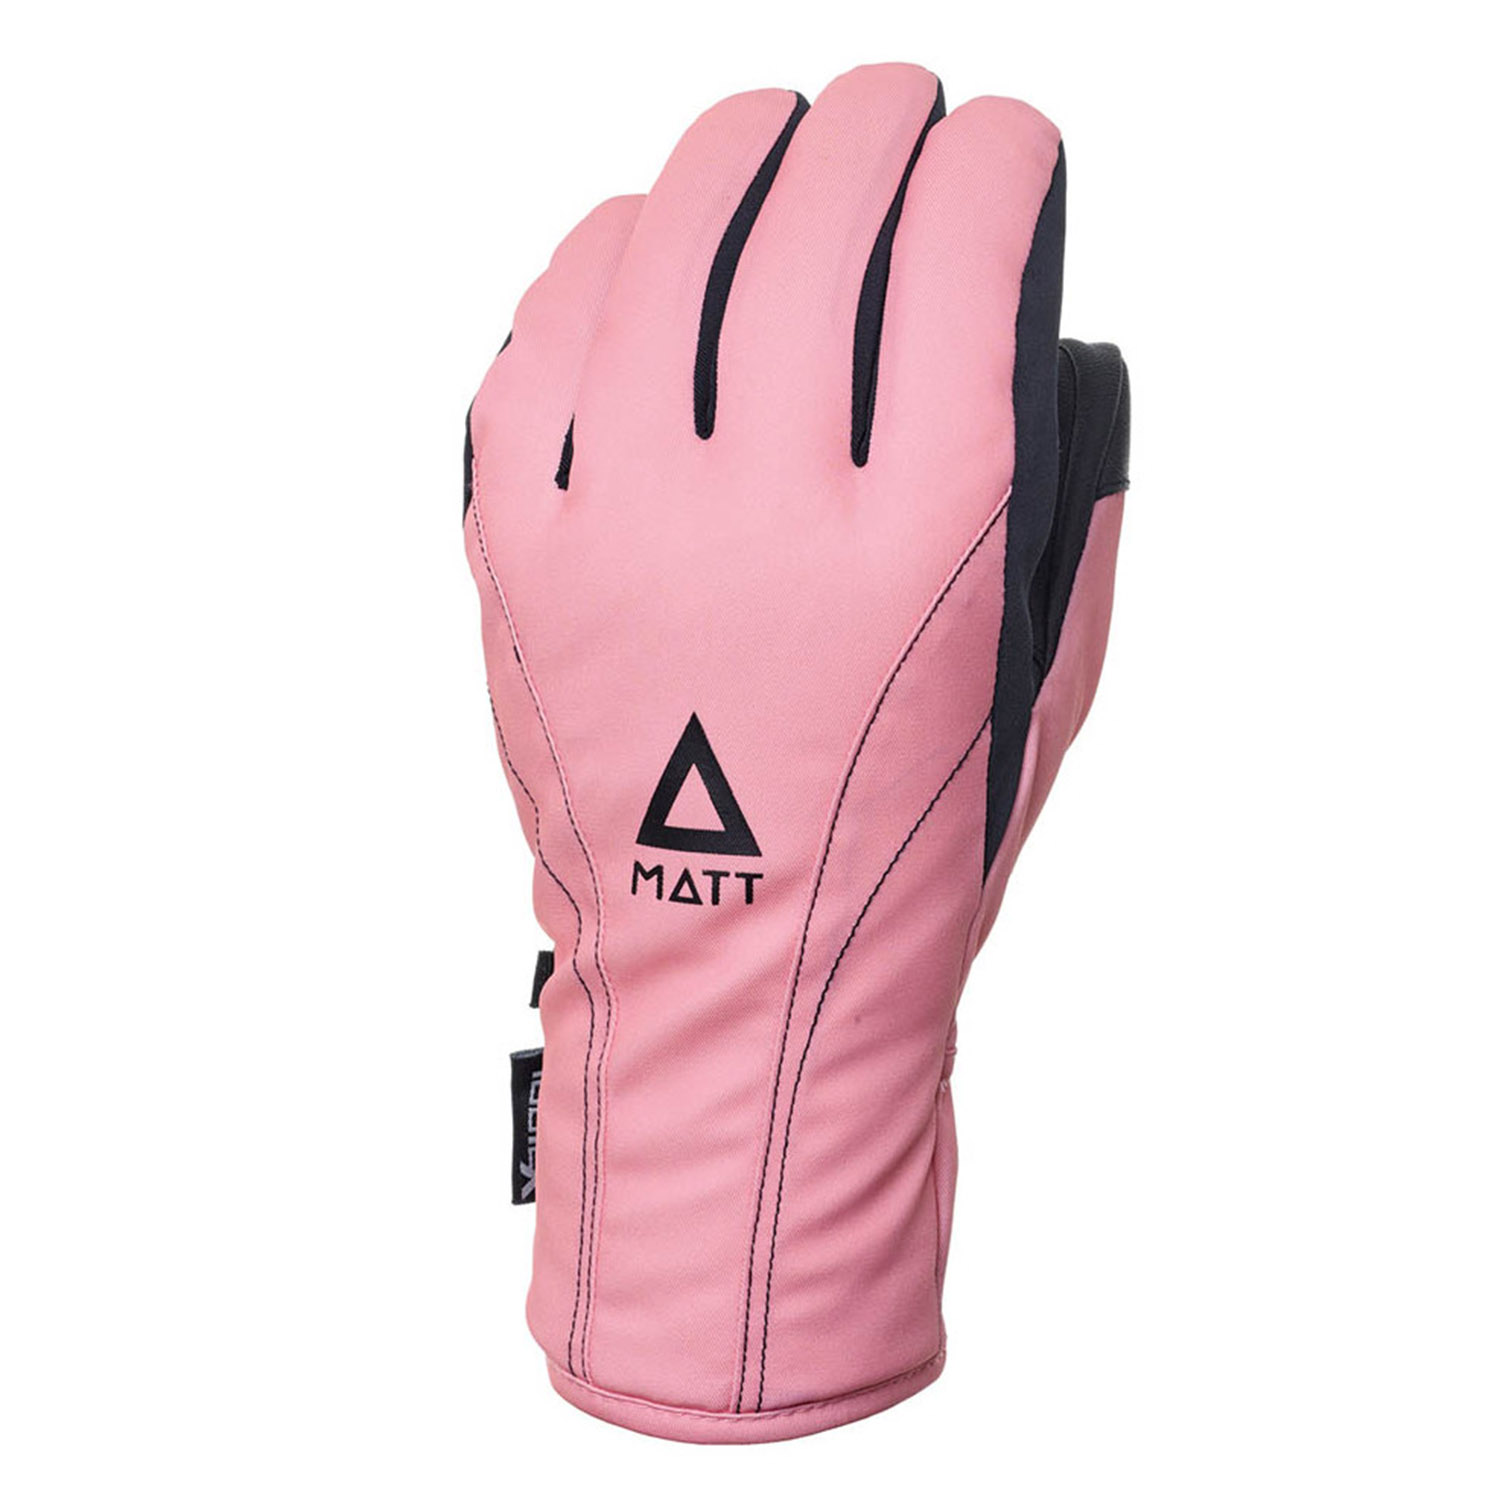 MATT TOOTEX GLOVES 3231JR Junior Γάντια σκι-Ροζ